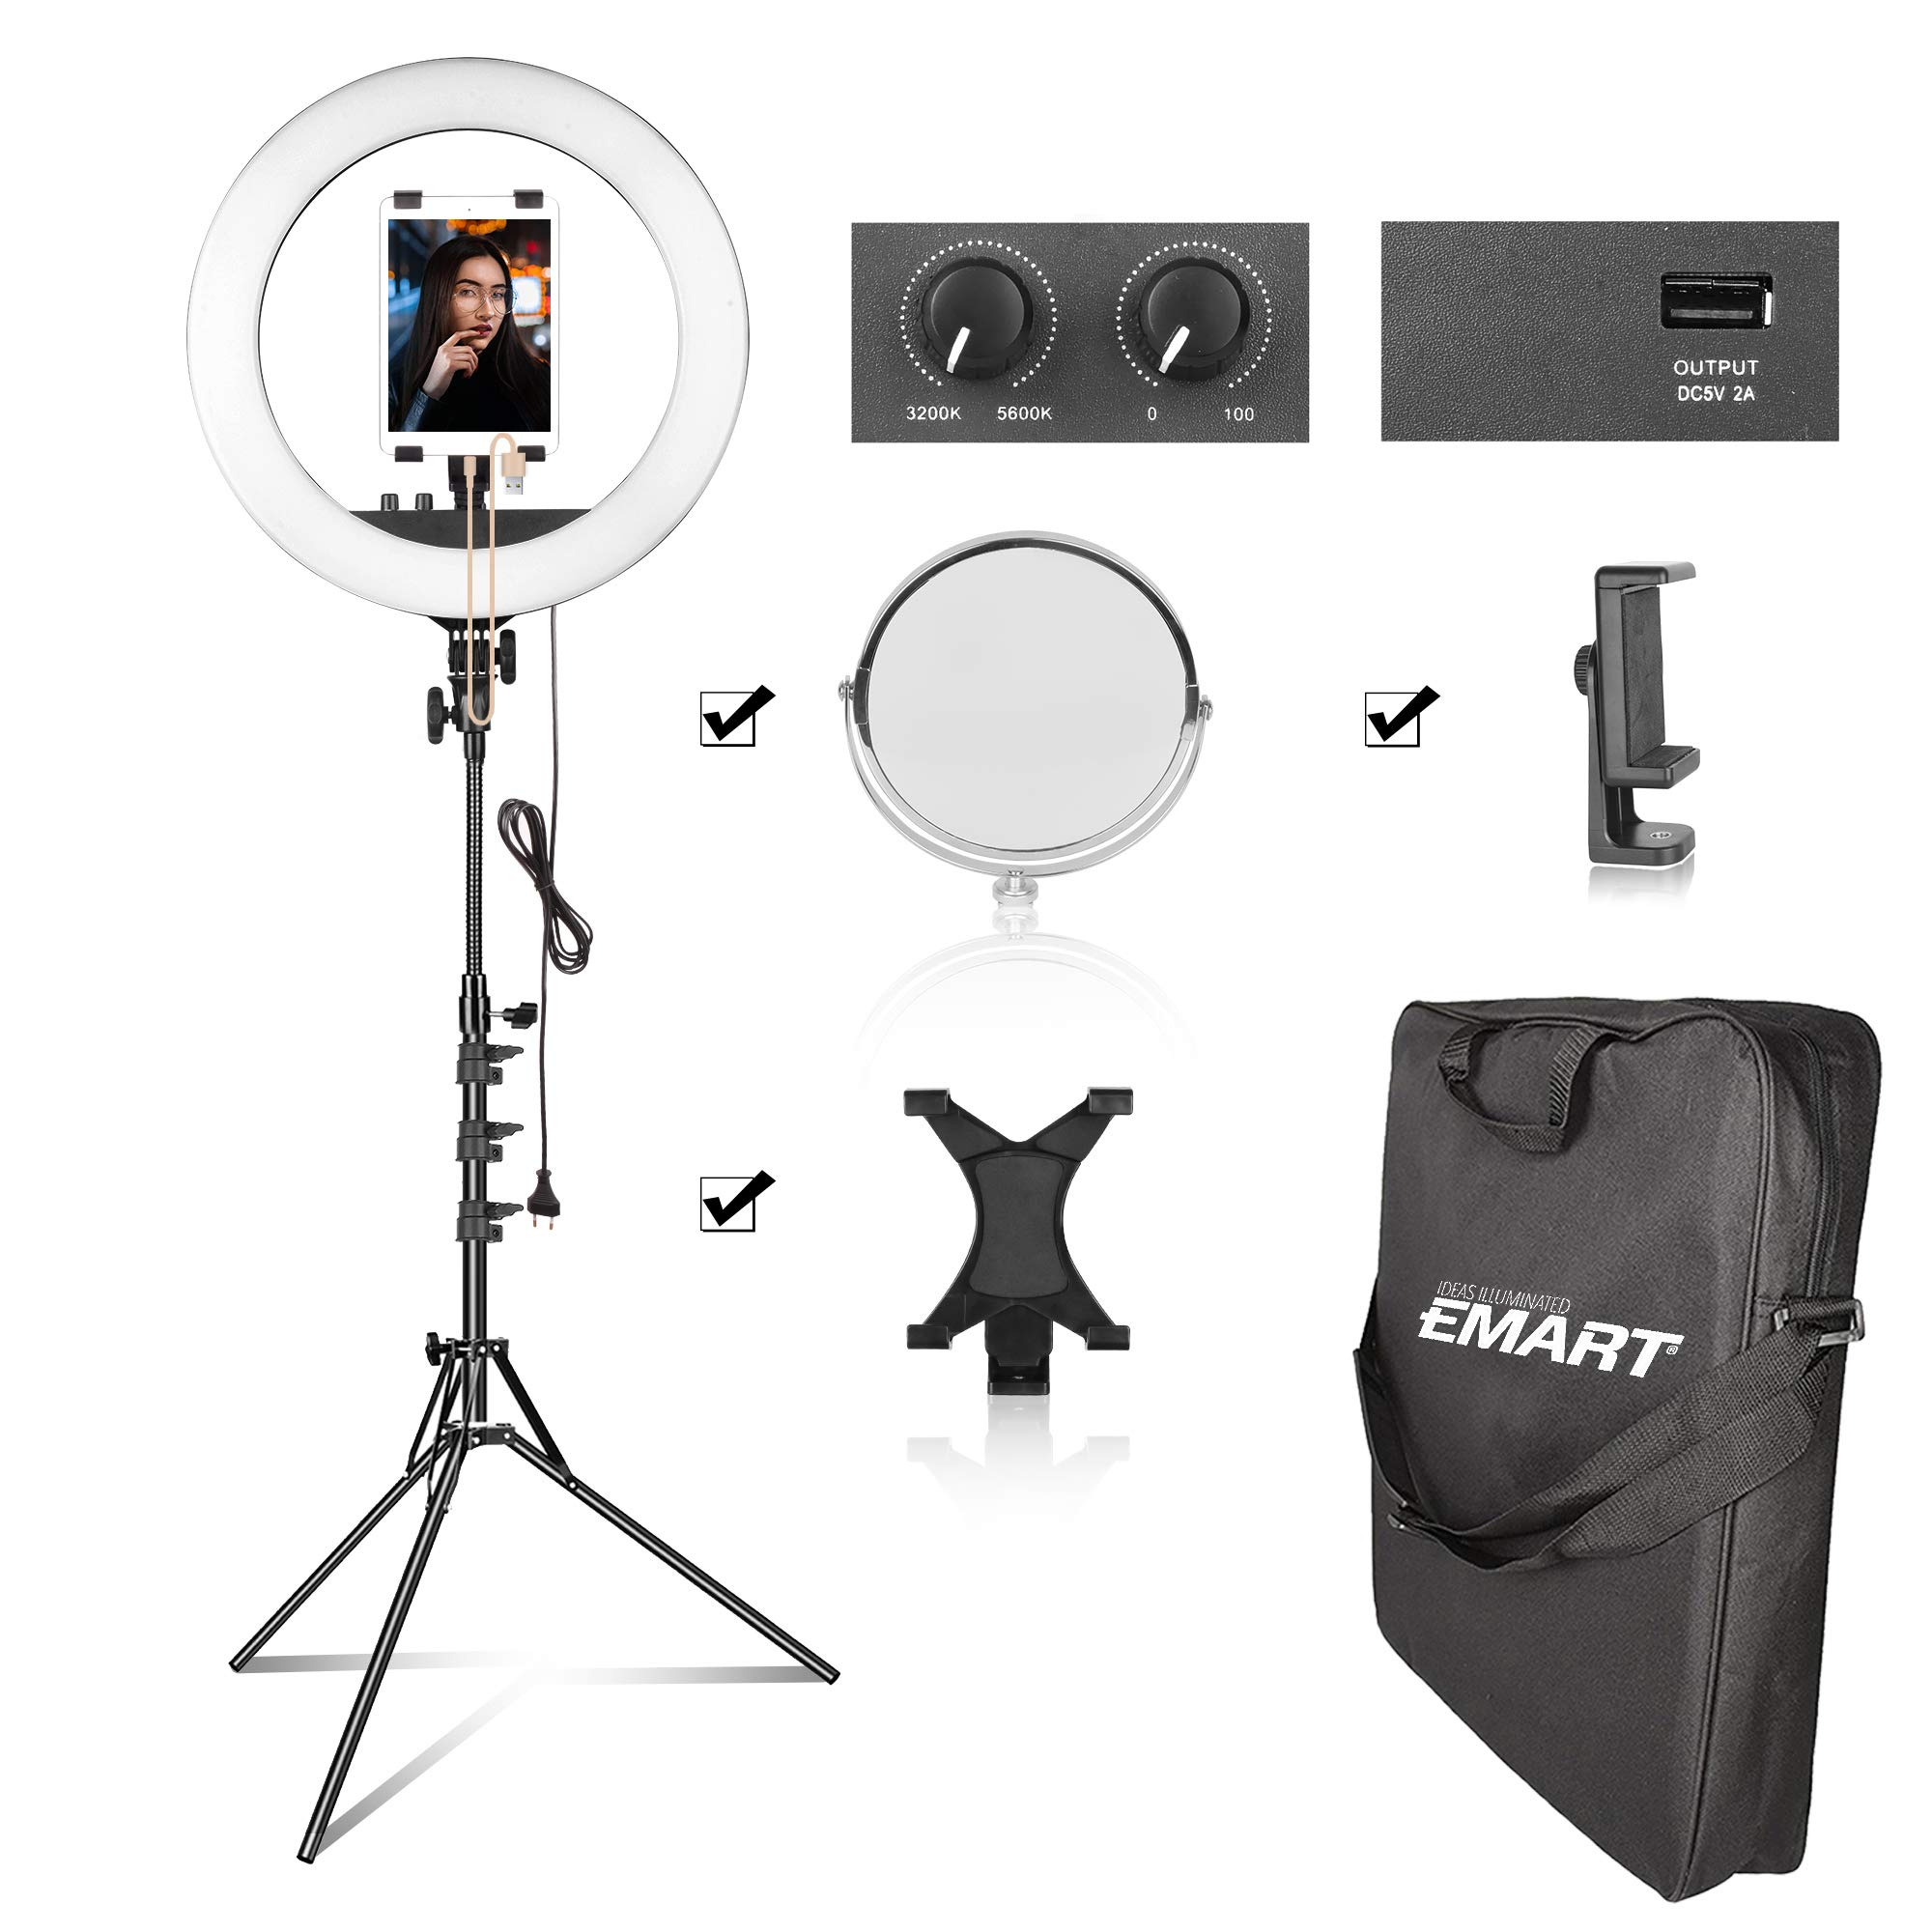 Emart 18'' Bi-Color LED Ring Light Kit with iPad & Phone Holder, USB Charging Interface and Light Stand, 55W Dimmable Continuous Circle Lighting Kit, for YouTube, Portrait, Selfie - Include Mirror by EMART